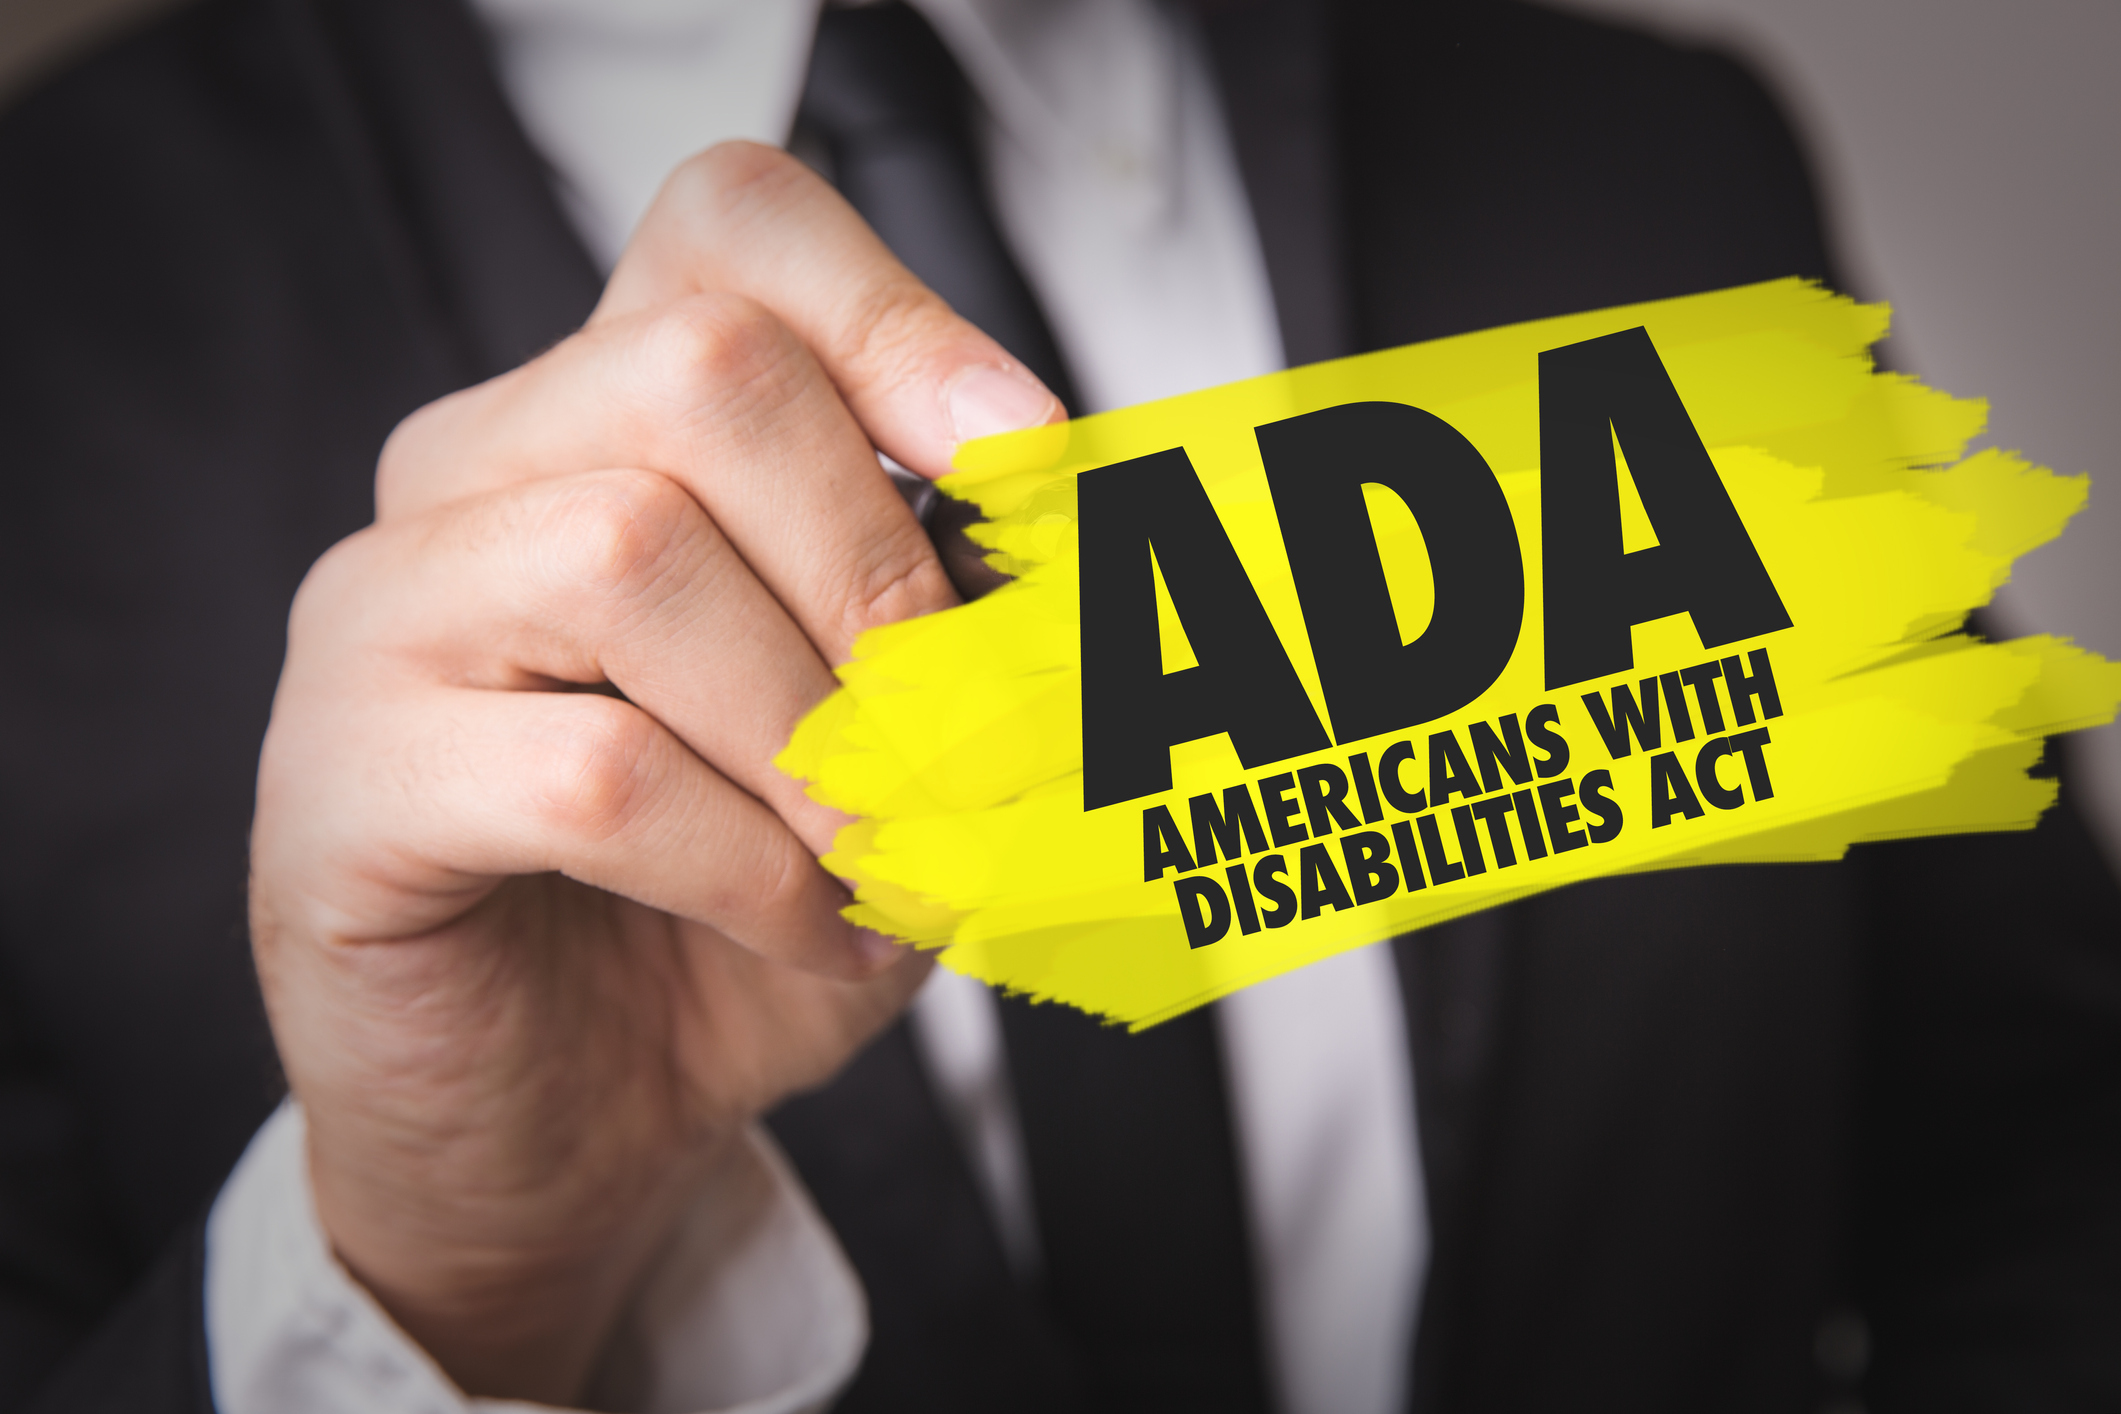 ADA - Americans With Disabilities Act sign